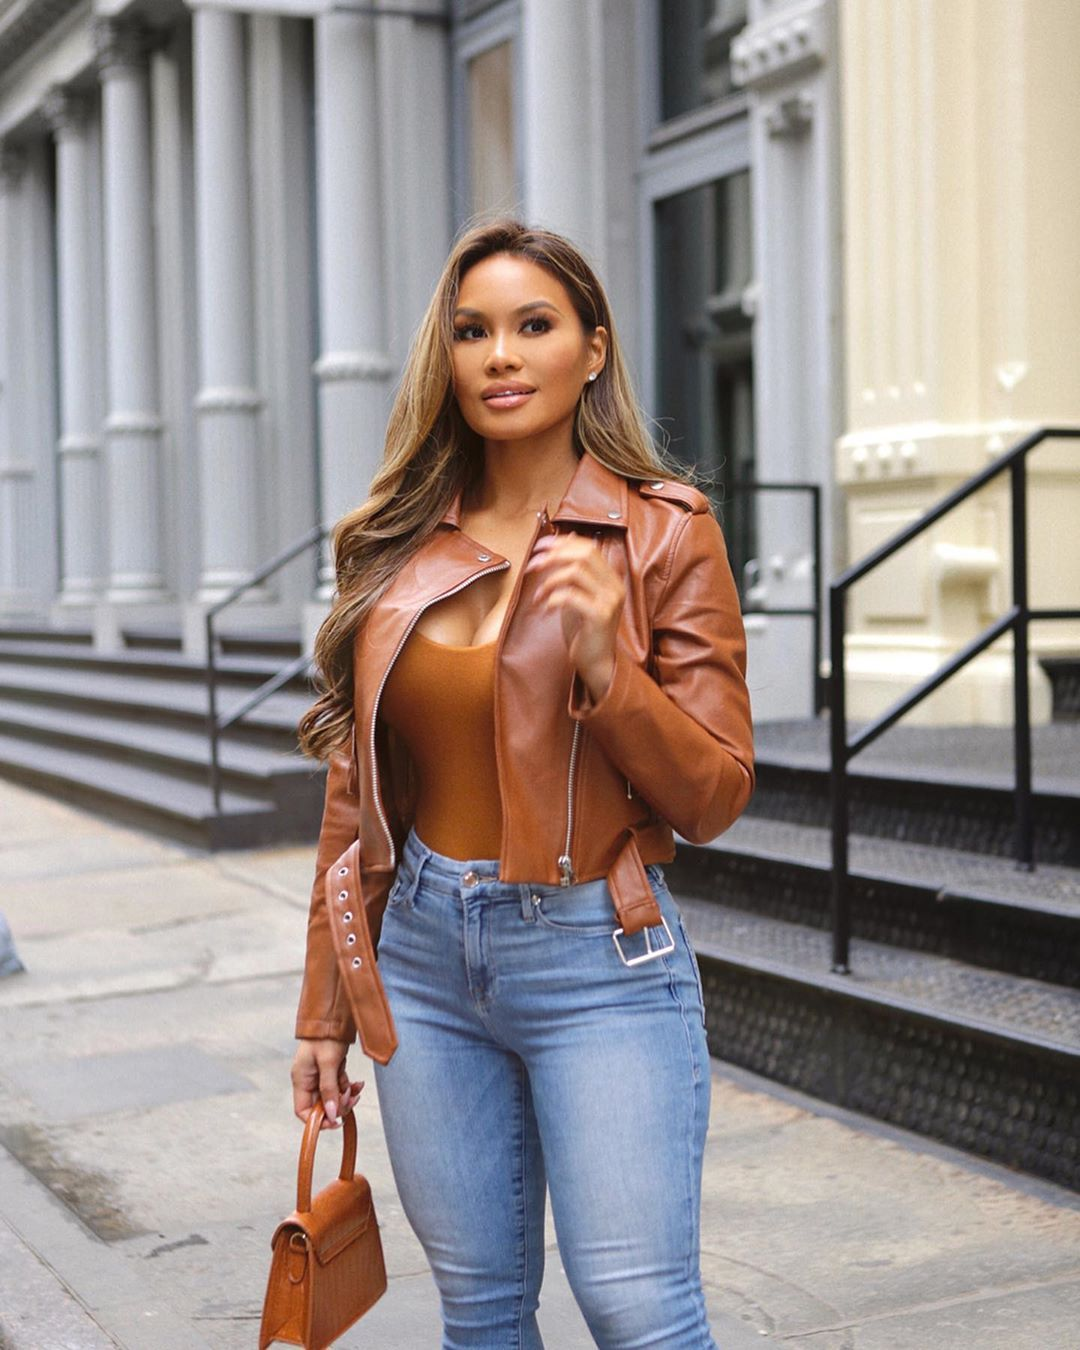 Daphne Joy posted on Instagram: 3rd taxi missed 🥴🚕